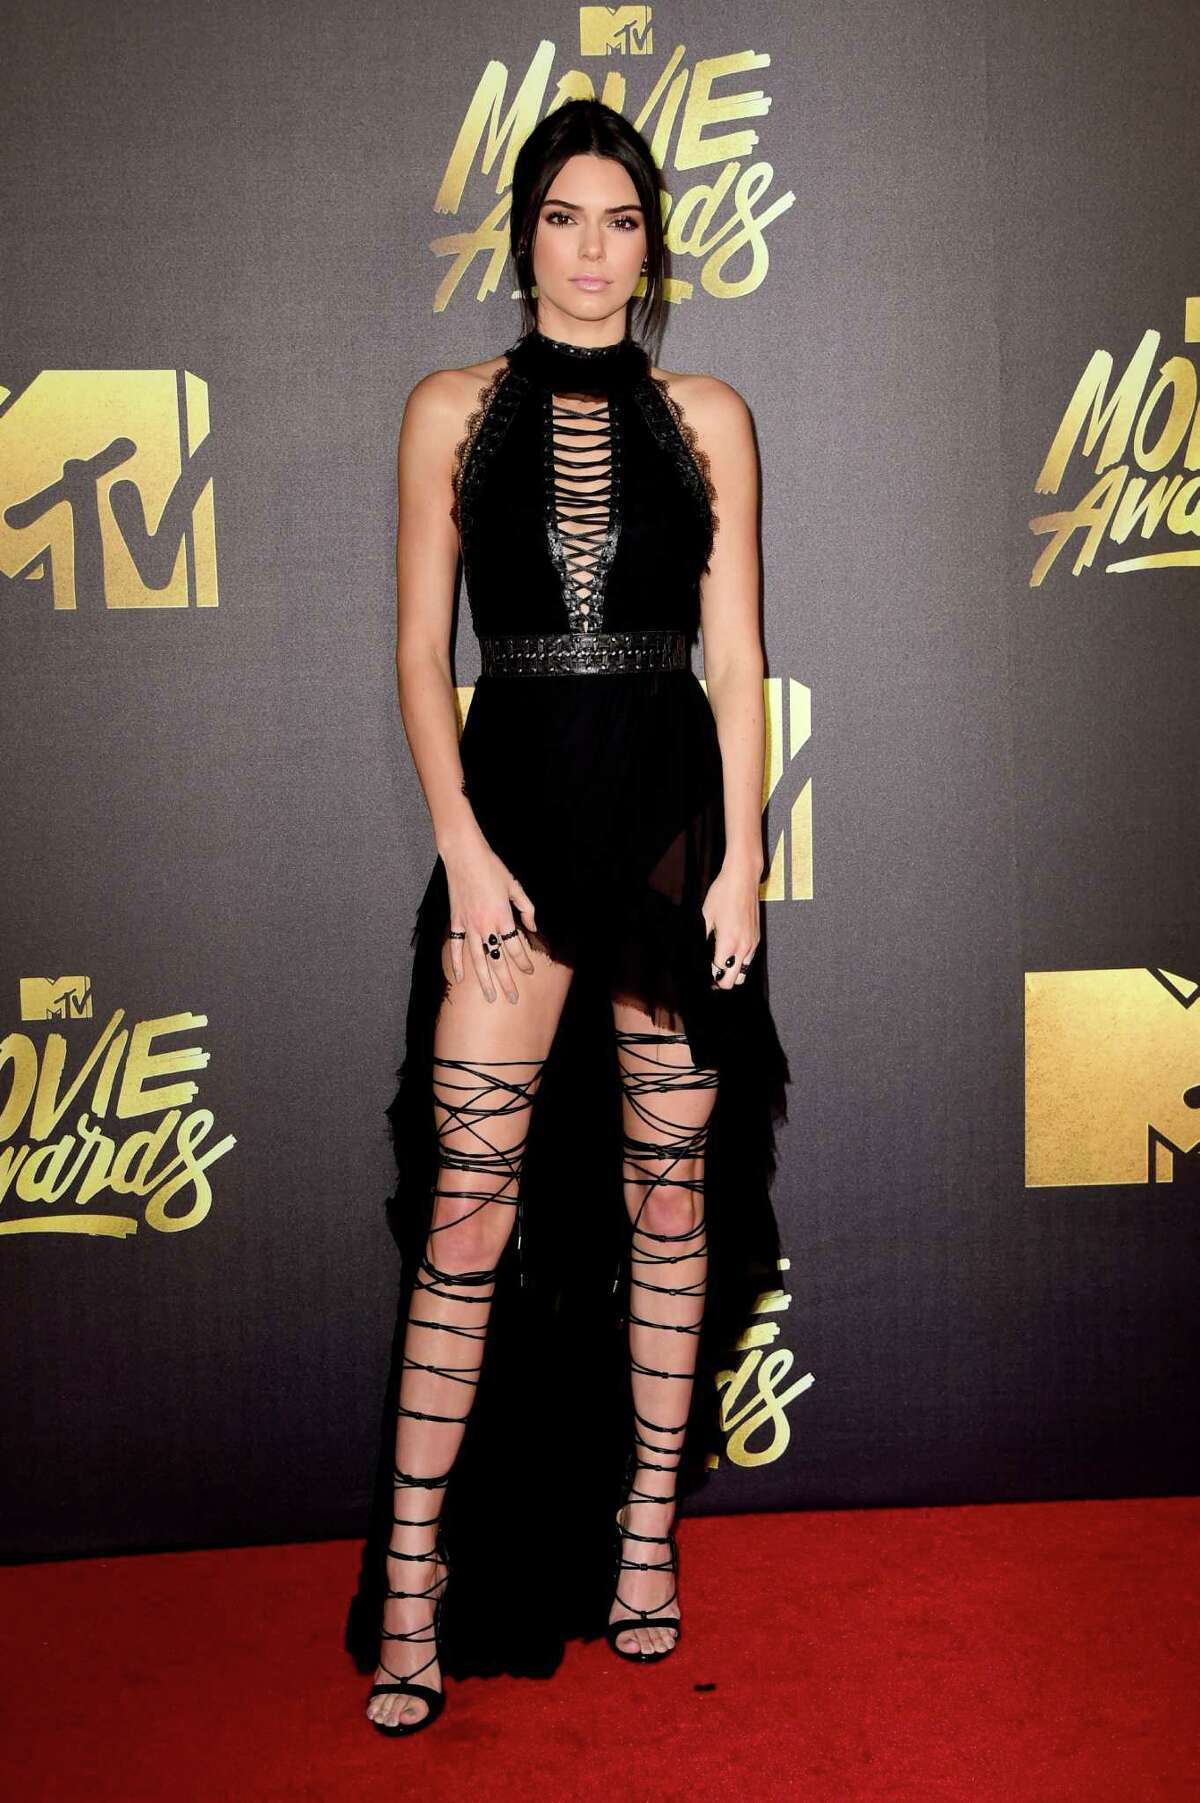 Best: Kendall Jenner We imagine it took an entire team of minions to get these shoes on, but the result satisfies our craving for MTV-inspired awesomeness.